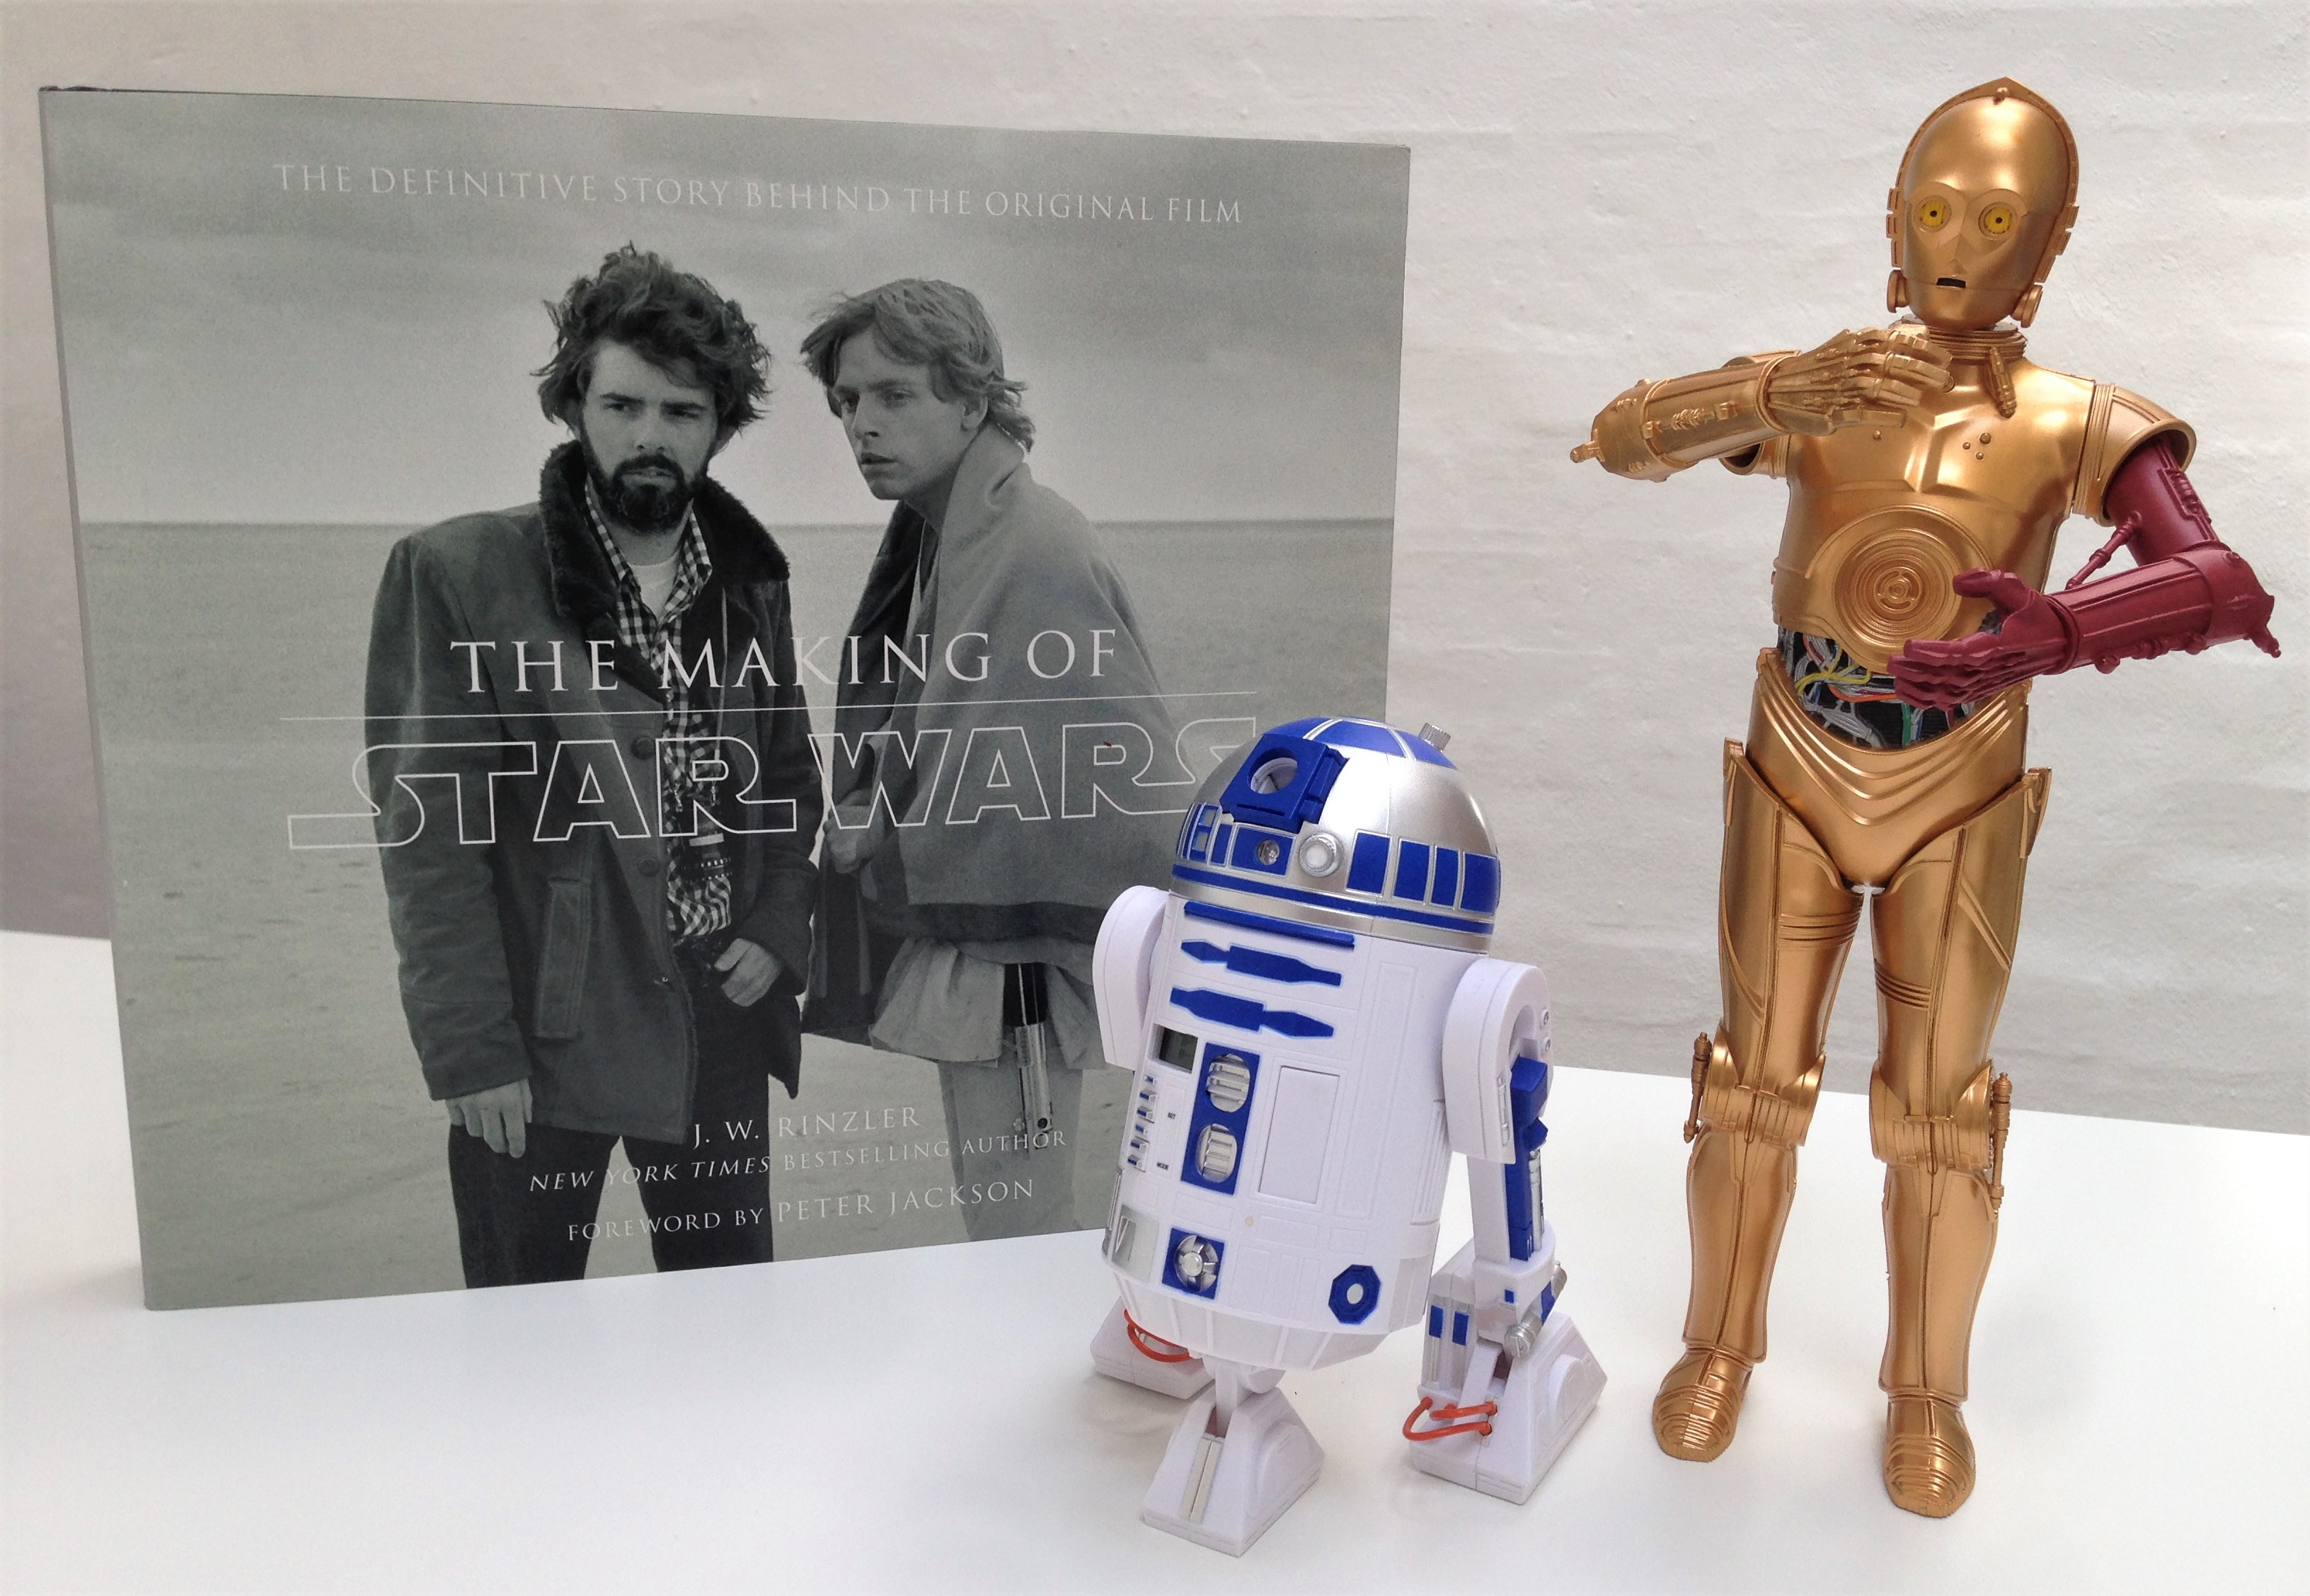 The Making of Star Wars - J.W. Rinzler - Star Wars A New Hope - Film - Plusbog.dk - Fiktion & Kultur (2)